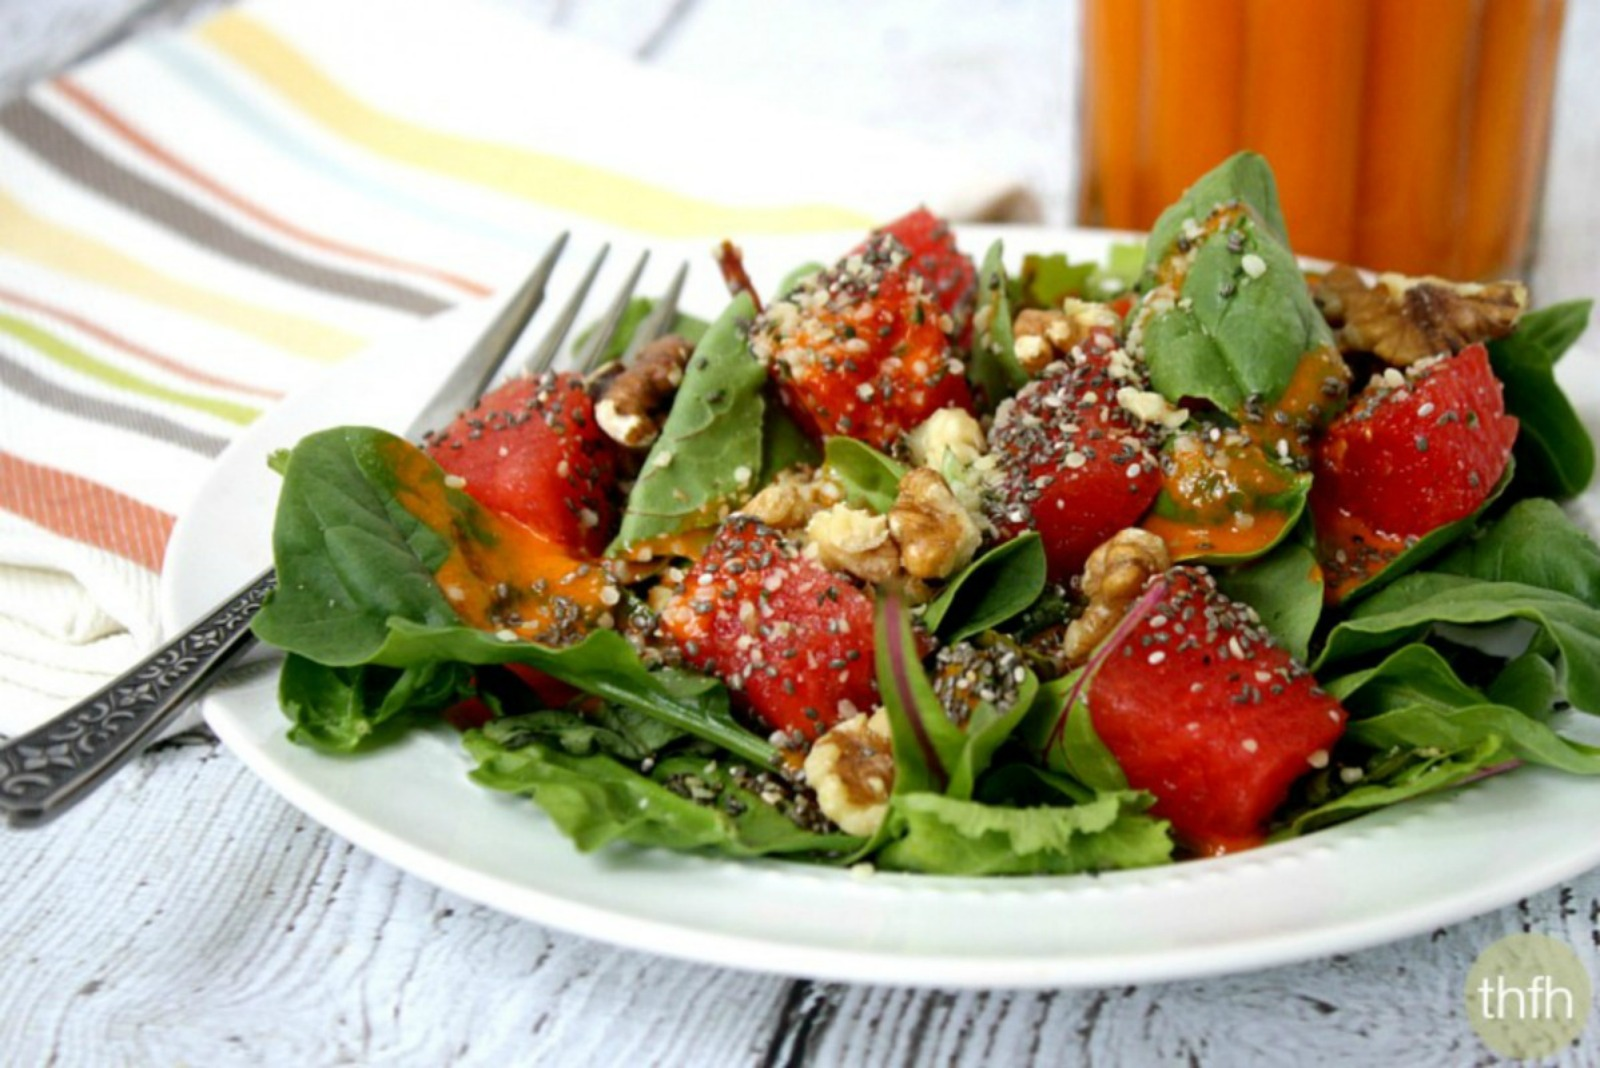 7 Spectacular Summer Recipes with Watermelon